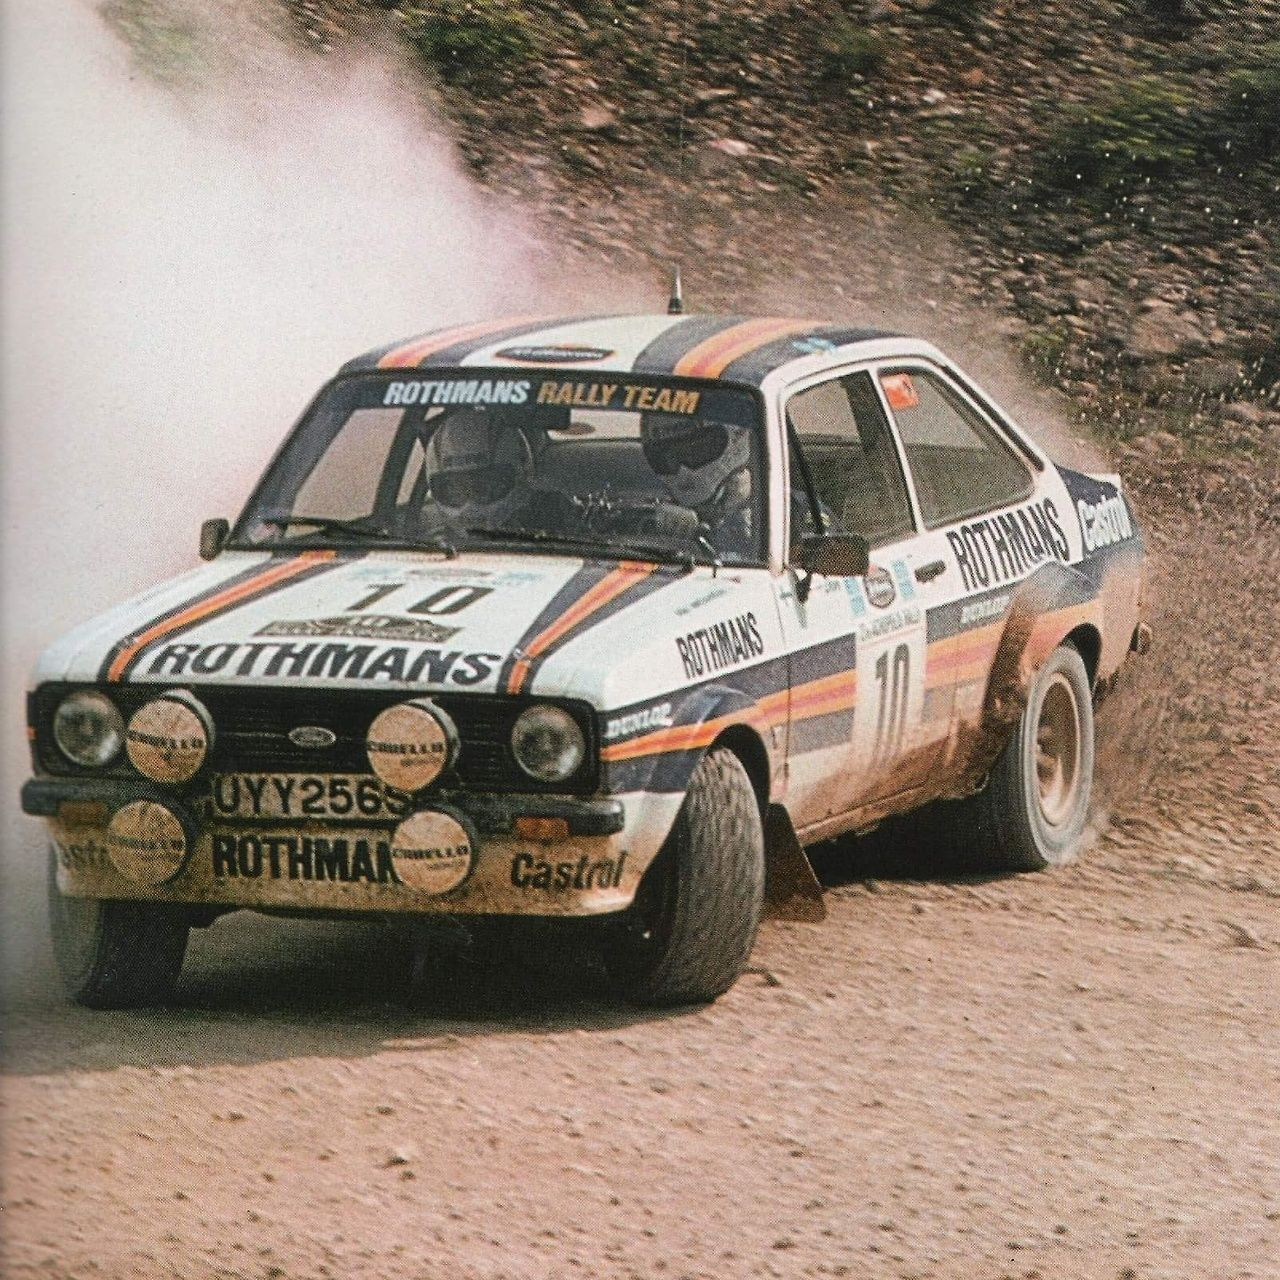 Ford Escort rally car | rally cars. | Pinterest | Ford escort, Rally ...